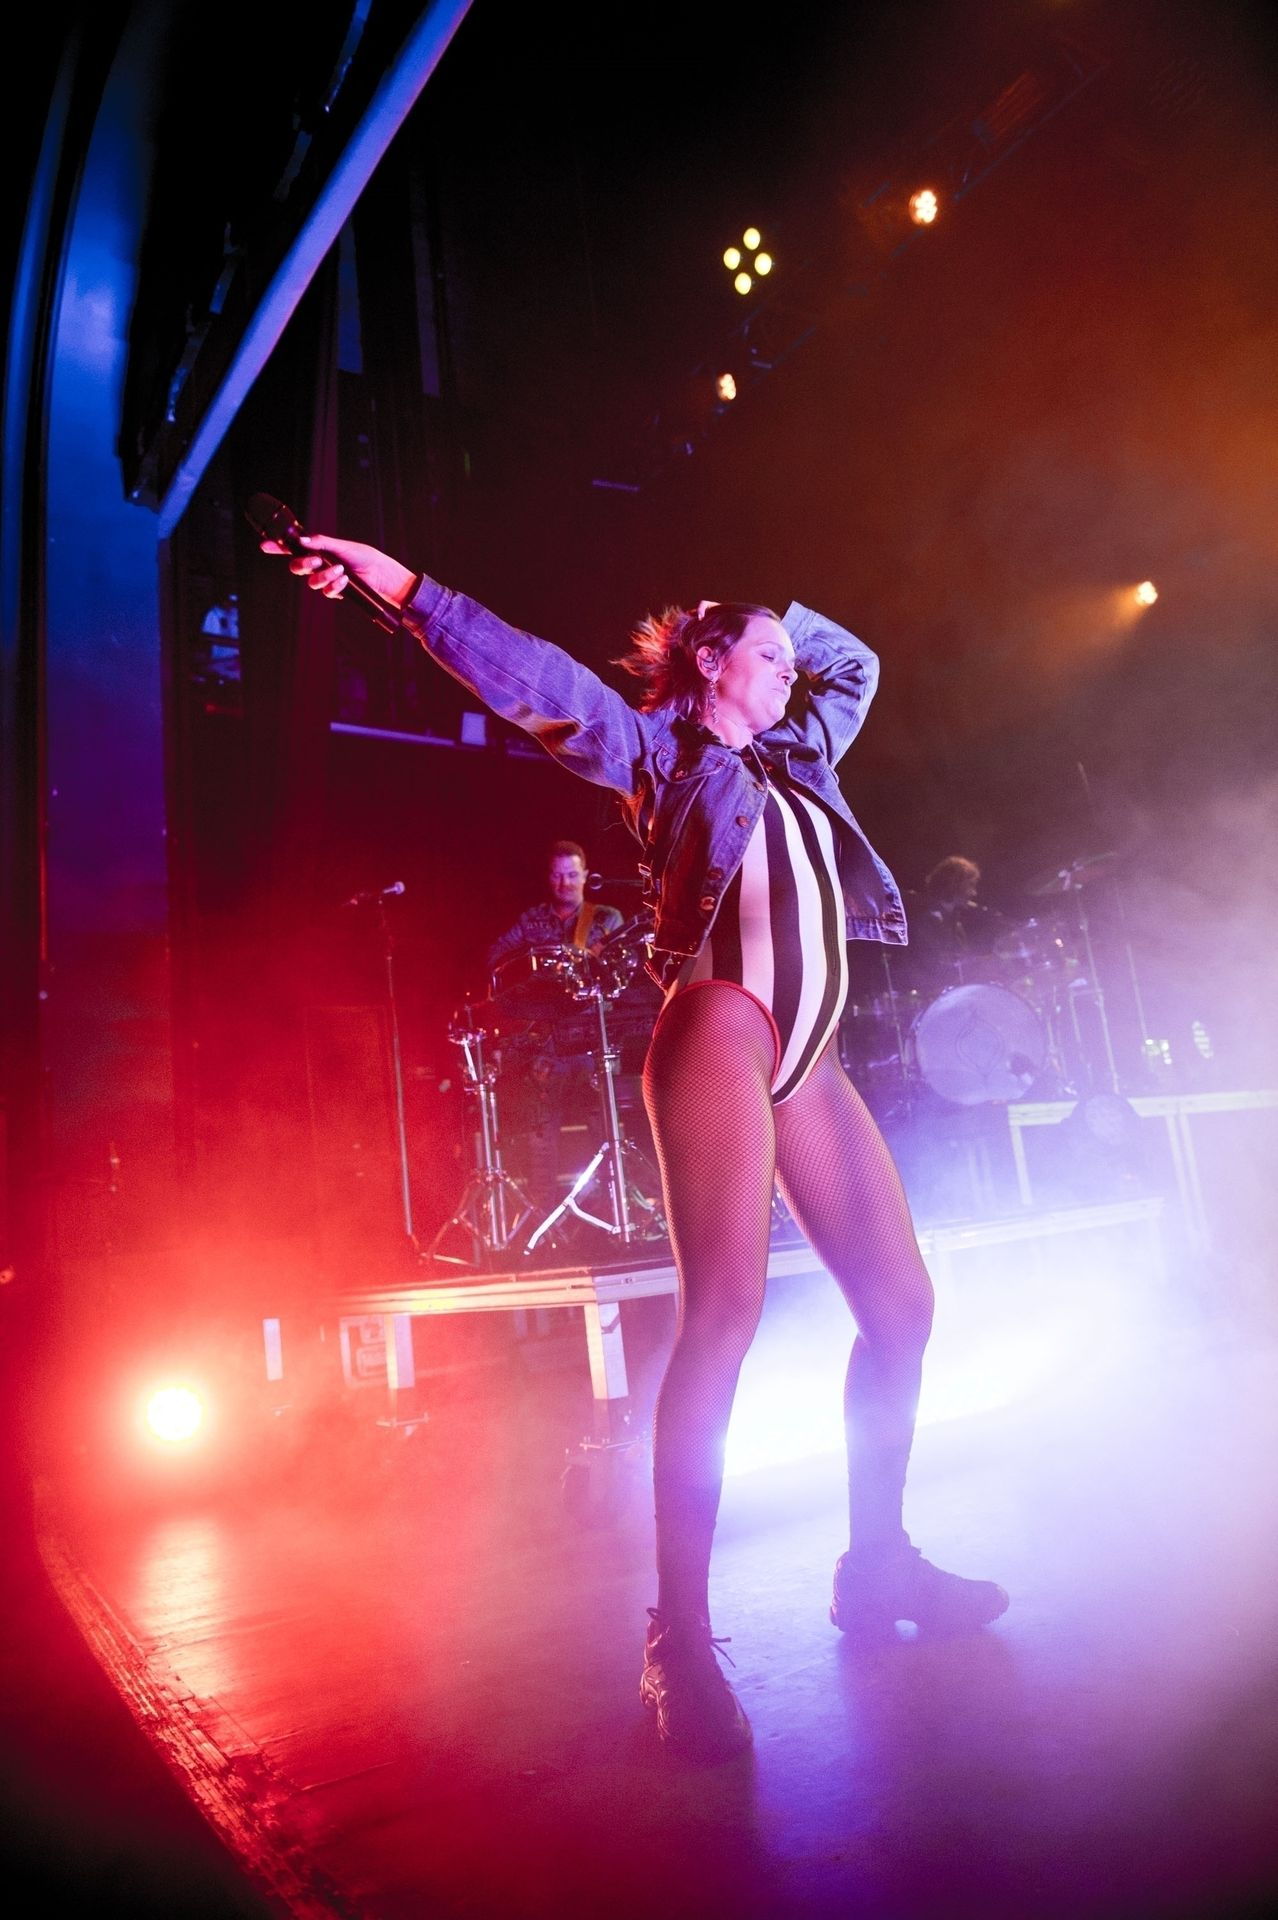 Tove Lo Is In Concert Performing Live At O2 Forum Kentish Town In London 0053